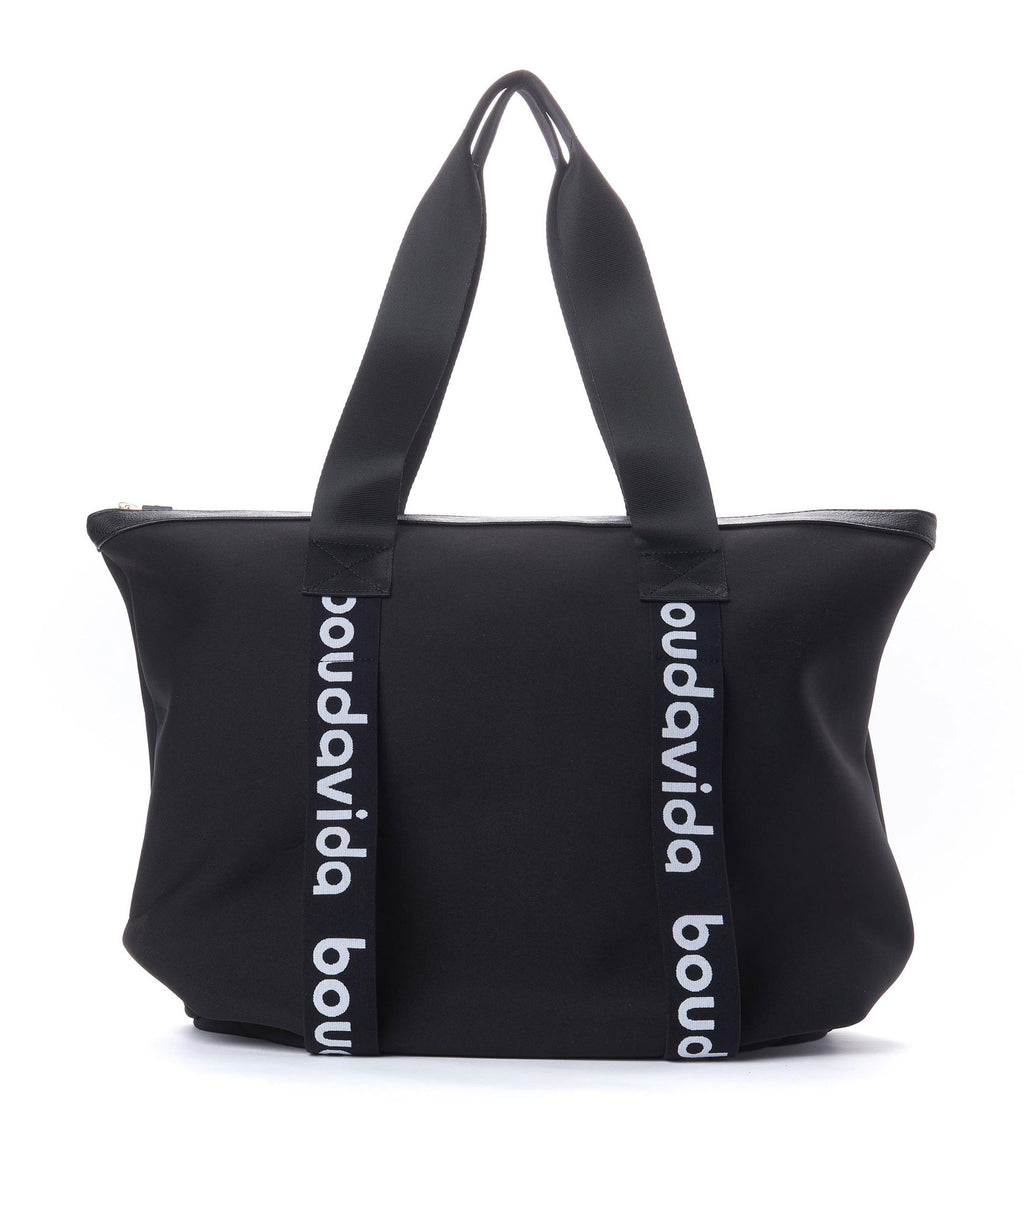 Boudavida Cushty Gym Bag Black